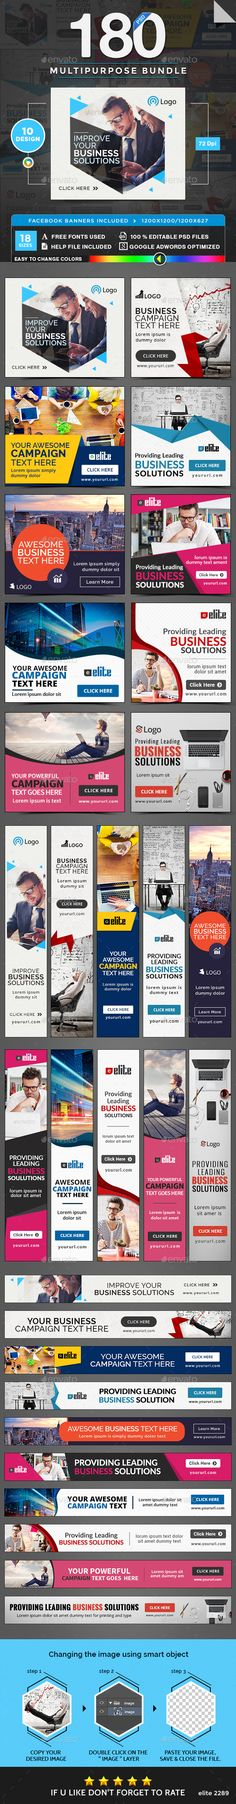 Multipurpose Banners Bundle - 10 Sets - 180 Banners - #Banners & Ads #Web Elements Download here:  https://graphicriver.net/item/multipurpose-banners-bundle-10-sets-180-banners/20009939?ref=alena994